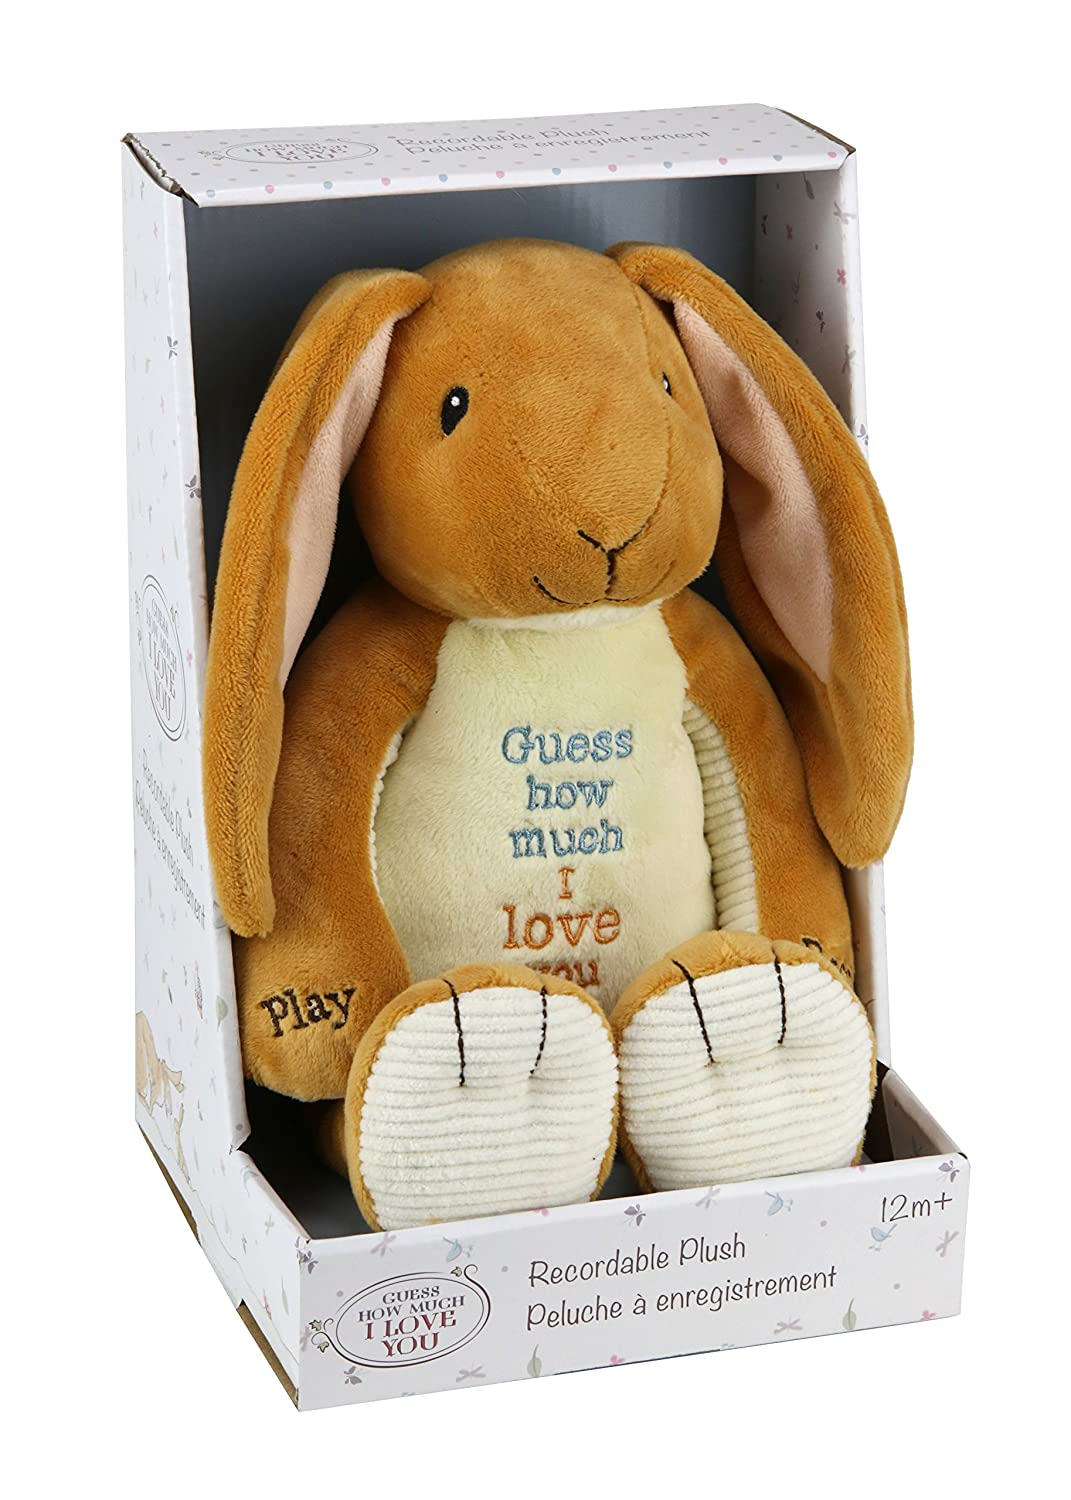 Amazon.com: Kids Preferred Guess How Much I Love You Nutbrown Hare Recordable Plush, 12